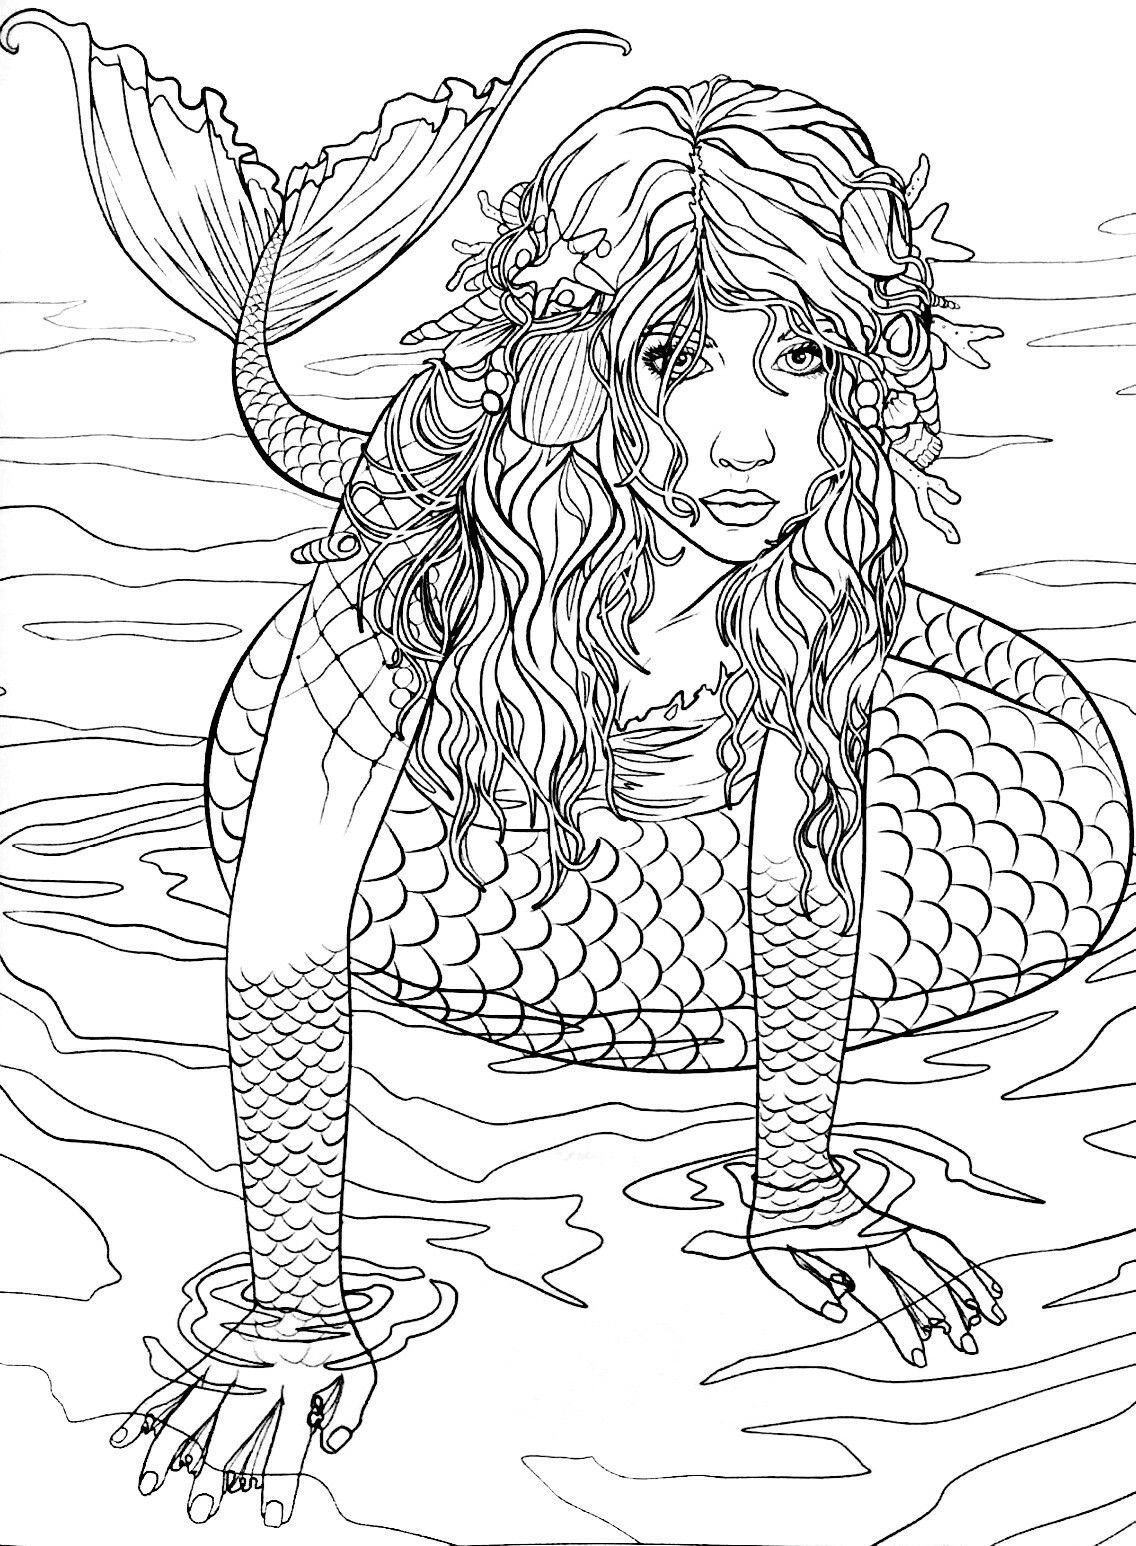 realistic printable mermaid coloring pages coloring pages mermaid ideas whitesbelfast mermaid realistic printable coloring pages